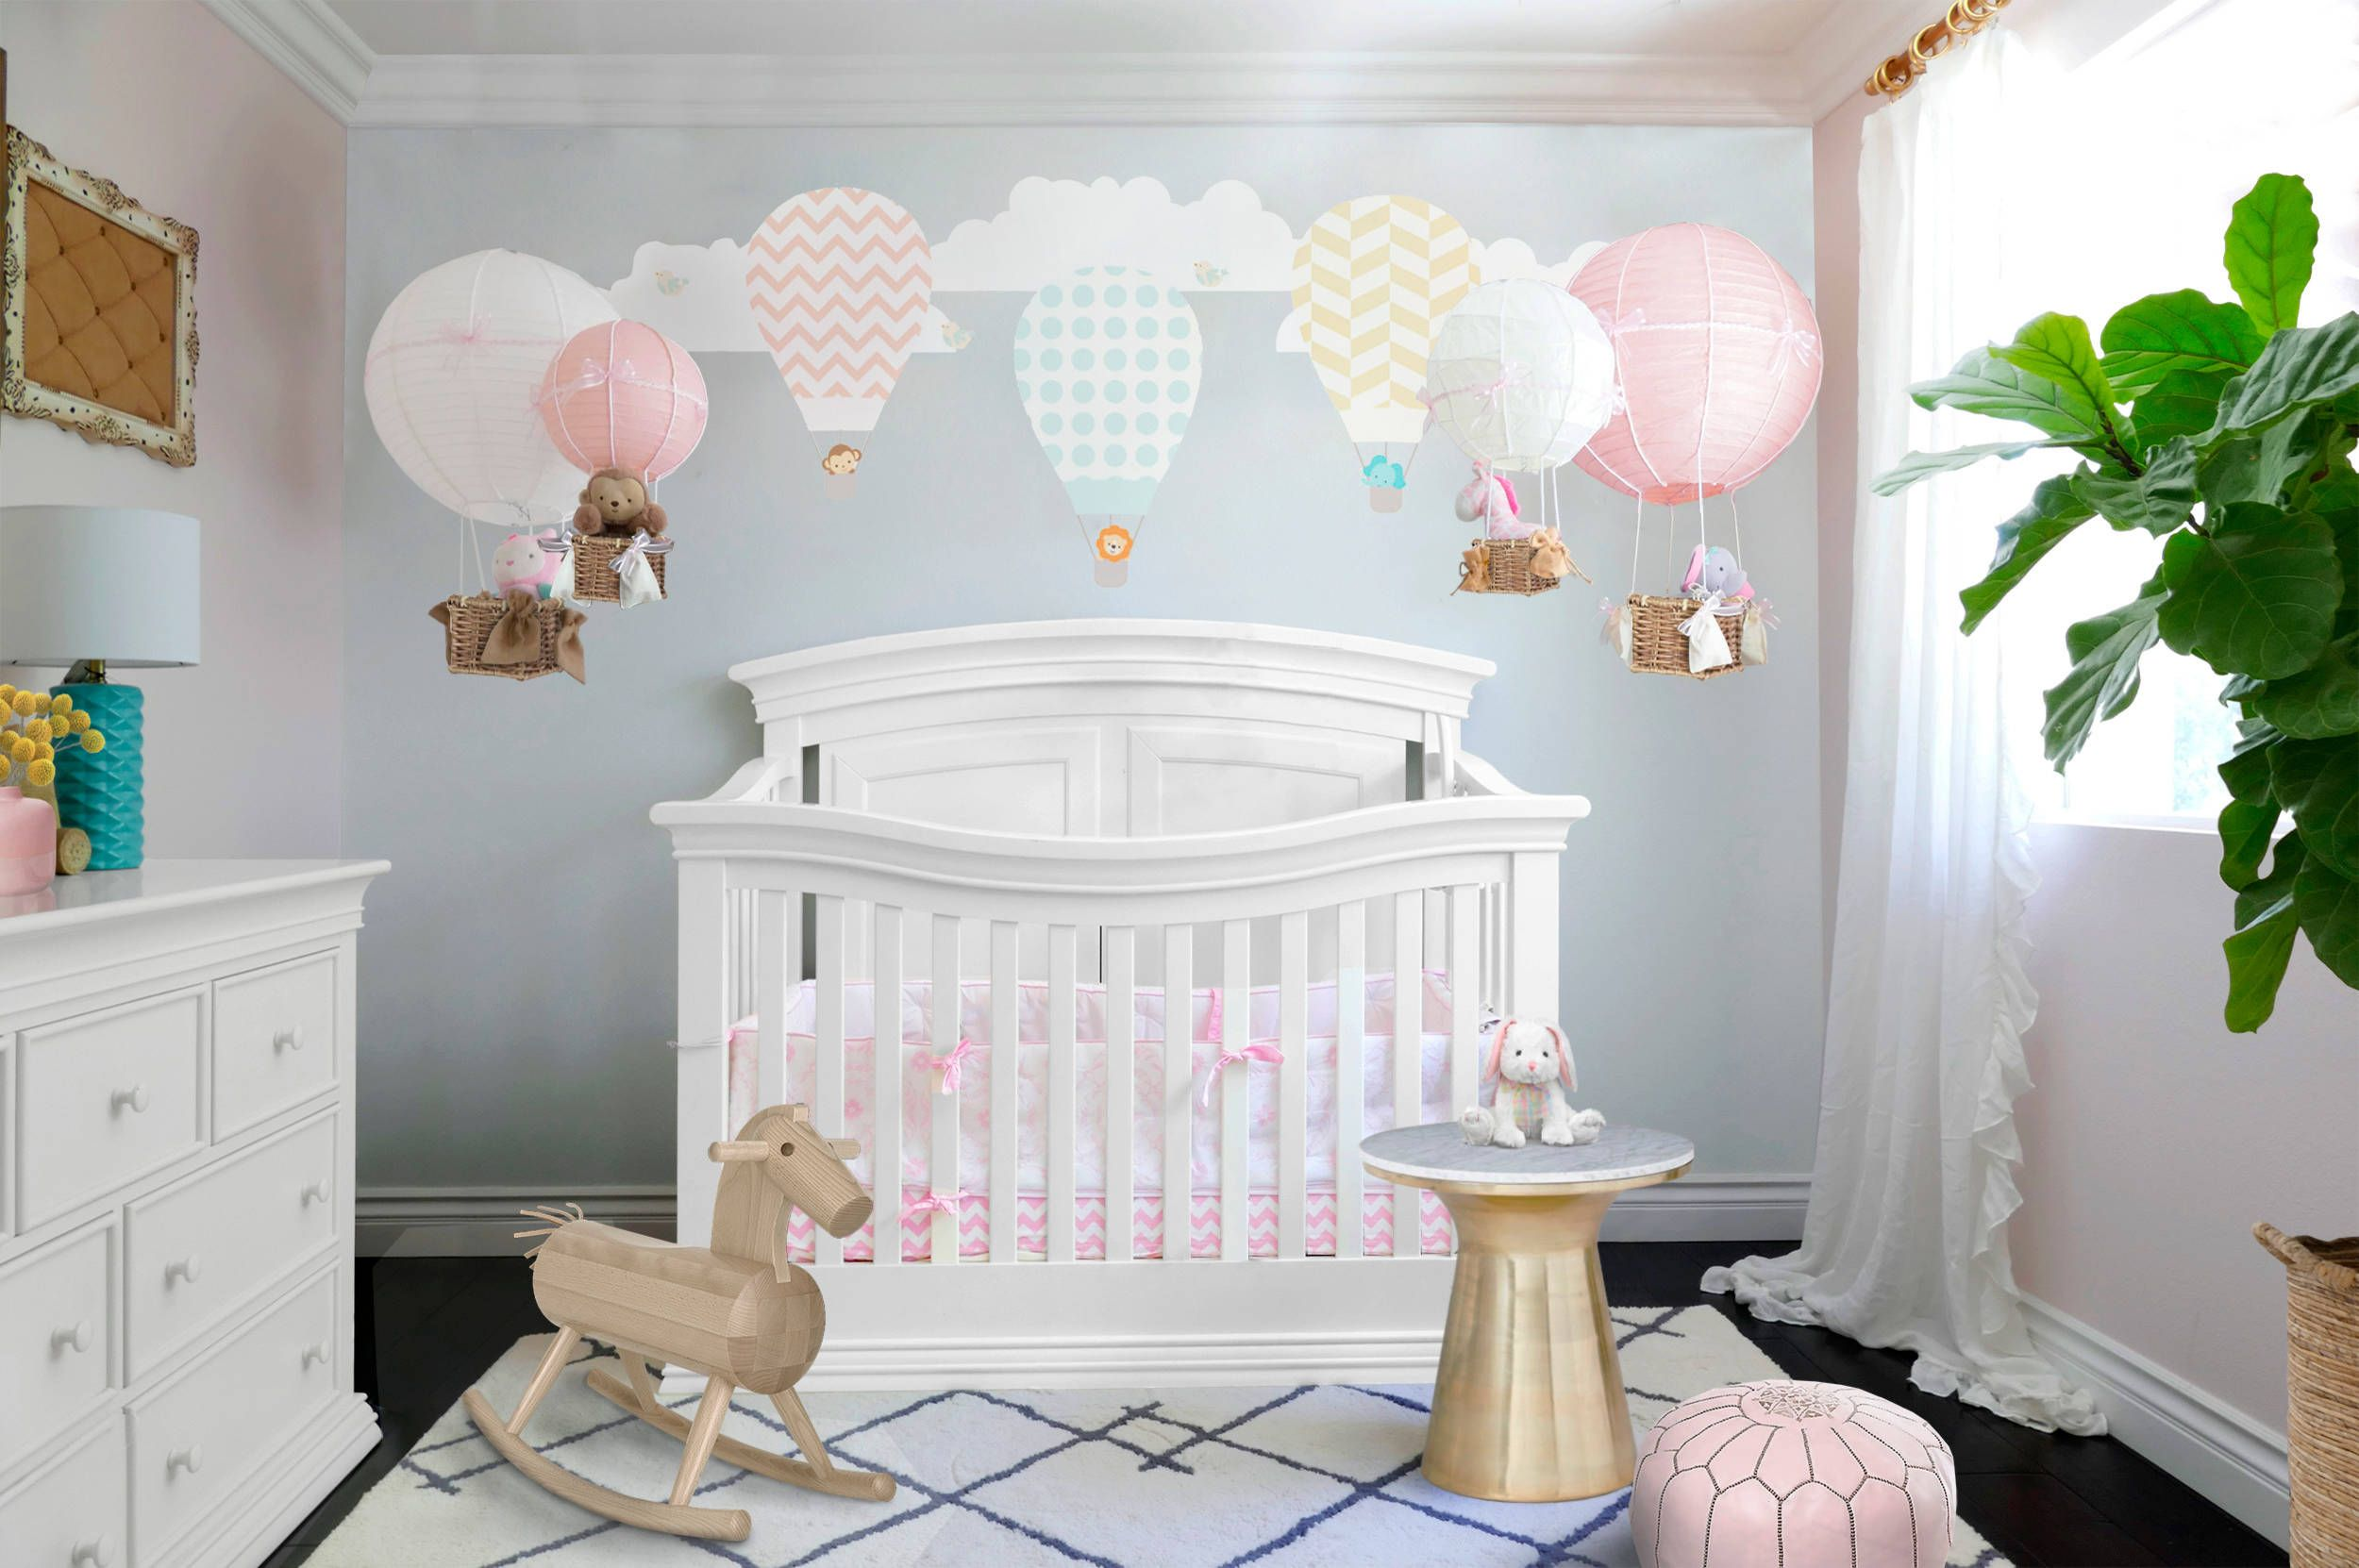 Hot Air Balloon Girl nursery Inspiration girlnursery